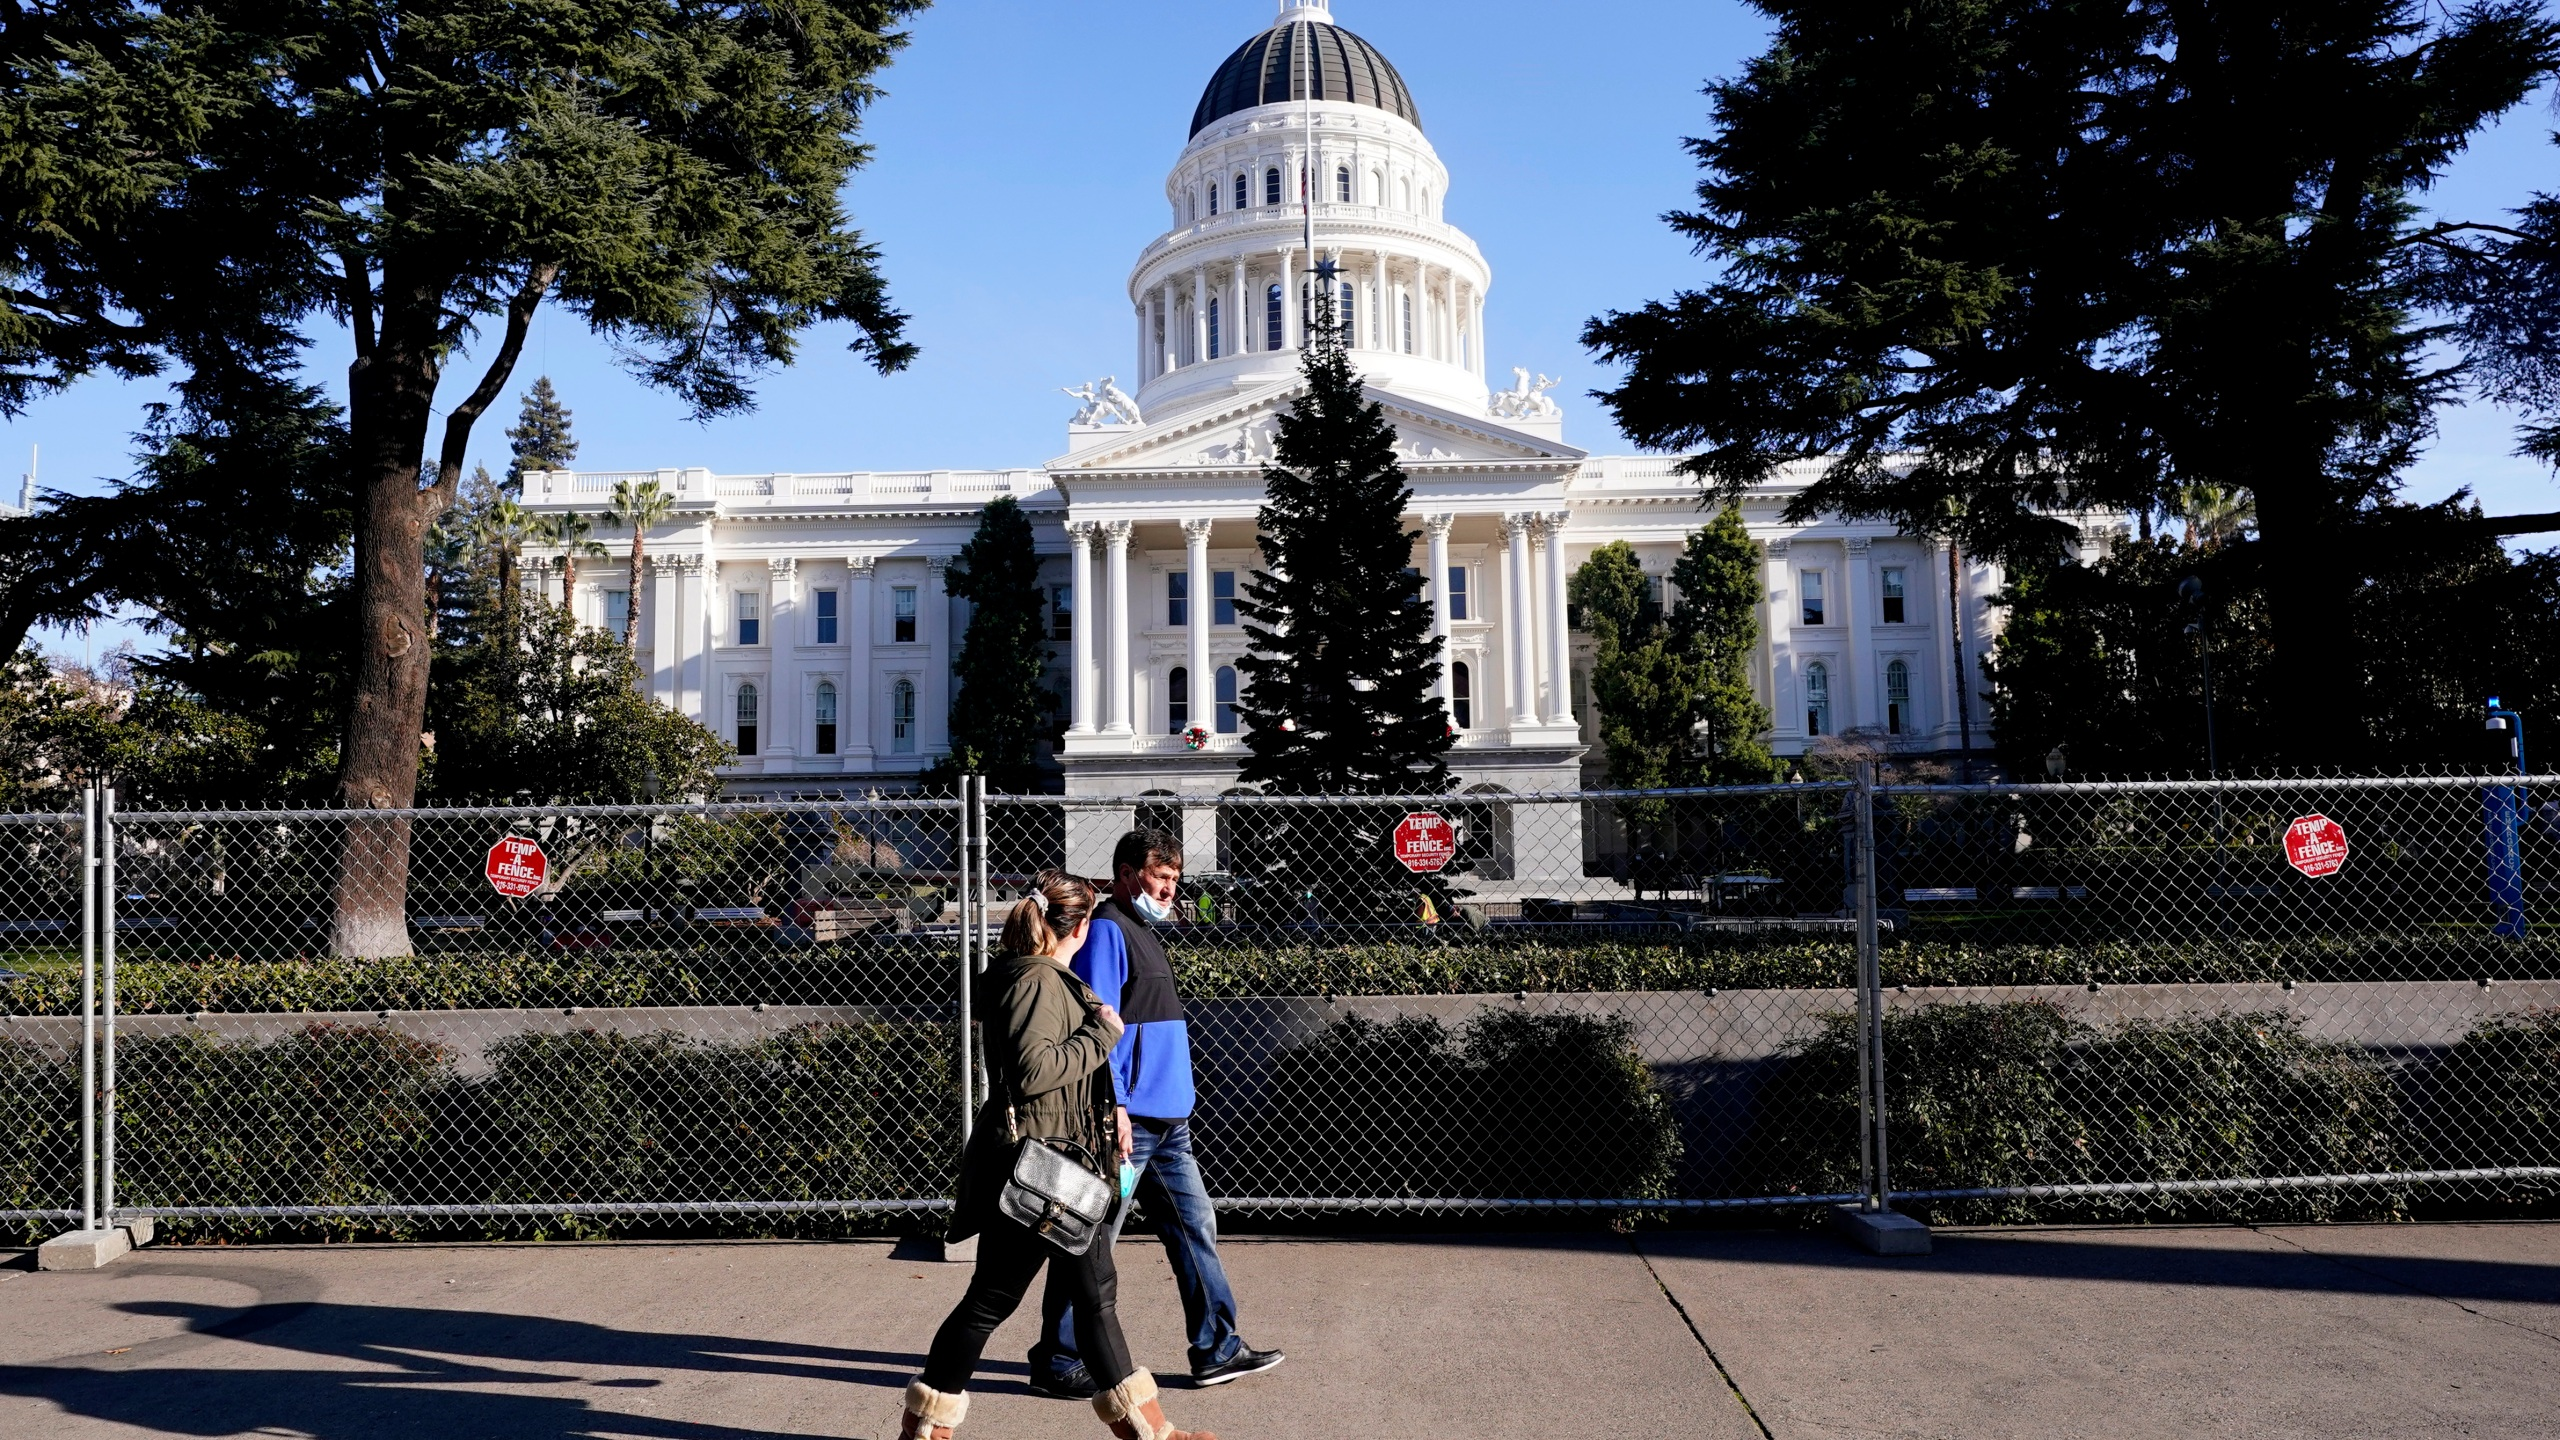 A temporary six-foot high chain link fence surrounds the state Capitol because of concerns over the potential for civil unrest, in Sacramento, Calif., Thursday, Jan. 14, 2021. (AP Photo/Rich Pedroncelli)